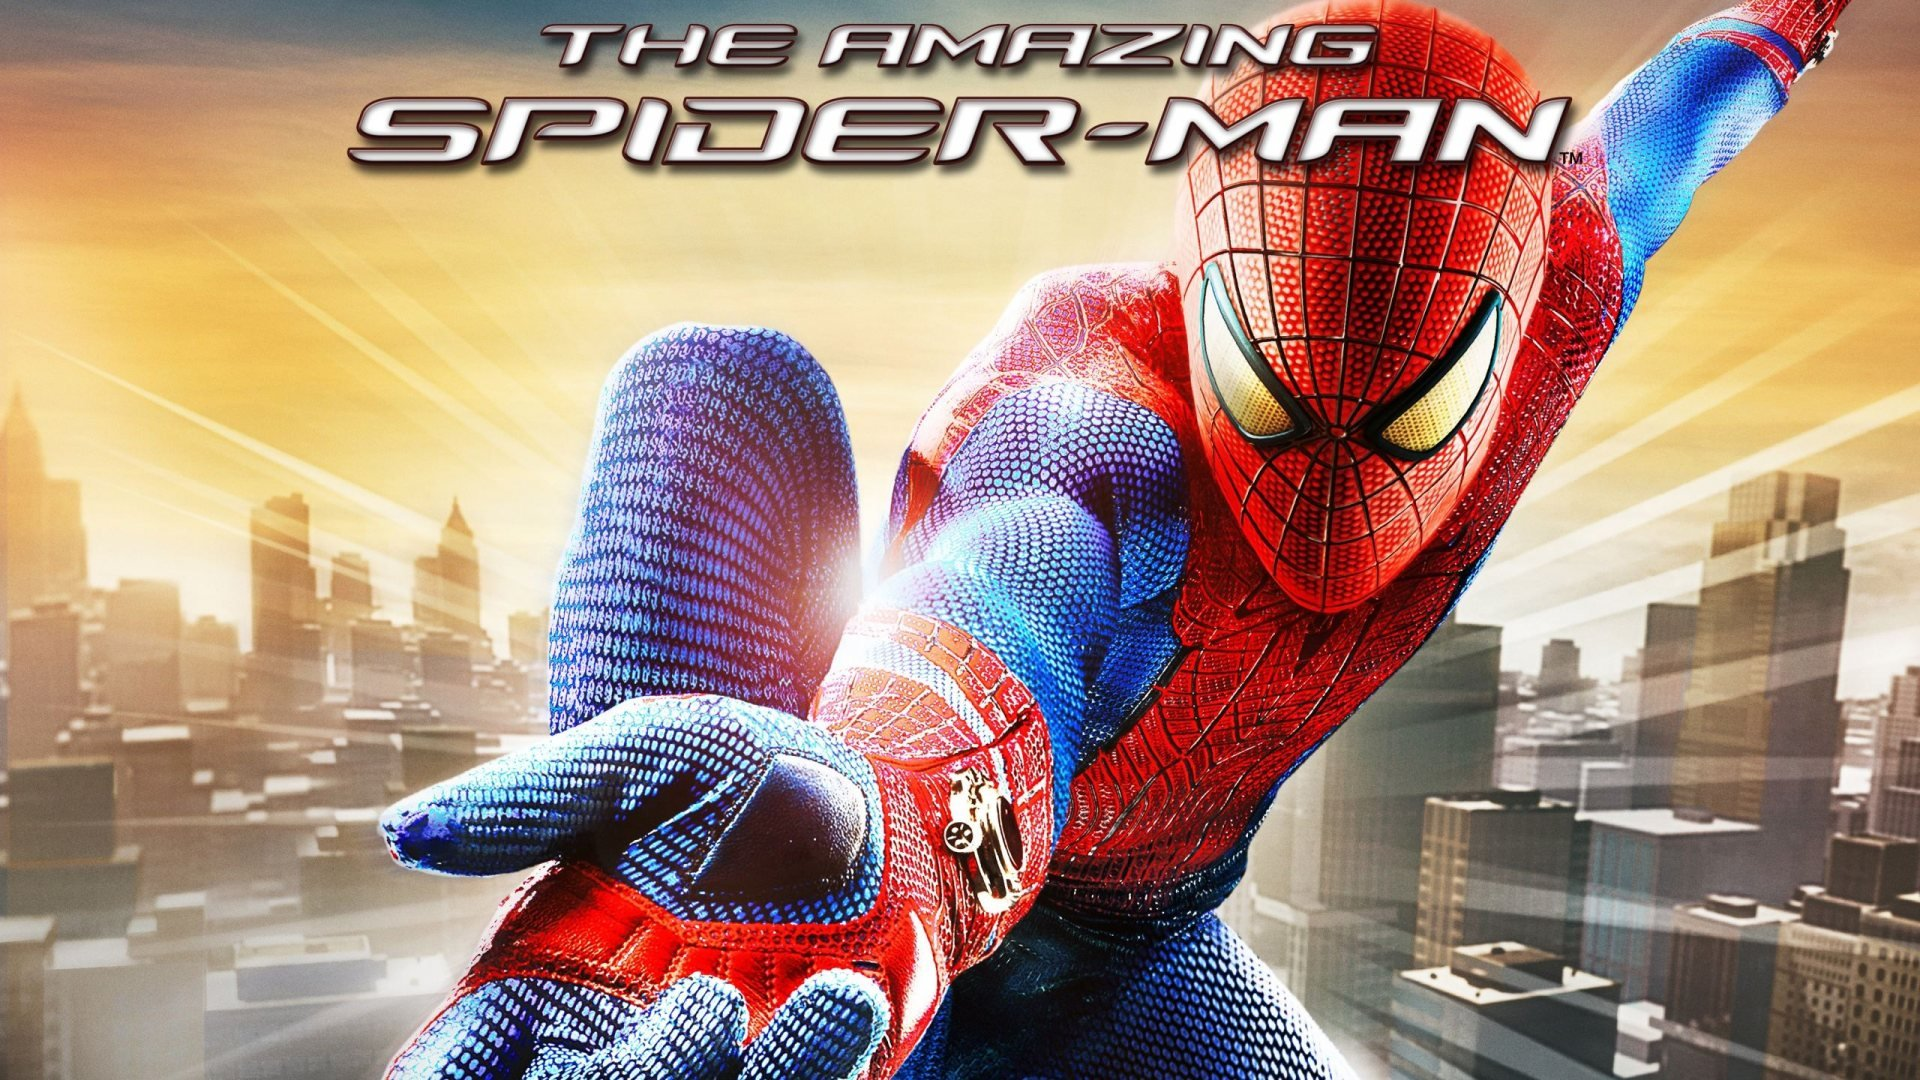 A tragically-often overlooked return to form,  The Amazing Spider-Man  realizes the potential of the open world superhero game to an even more successful degree than  Spider-Man 2 , benefitting of course from more advanced technology. Spidey is a breeze to swing through New York with, and tightness on the stick paired with an enormous wealth of content make this the best Spidey game yet in the 2010s.